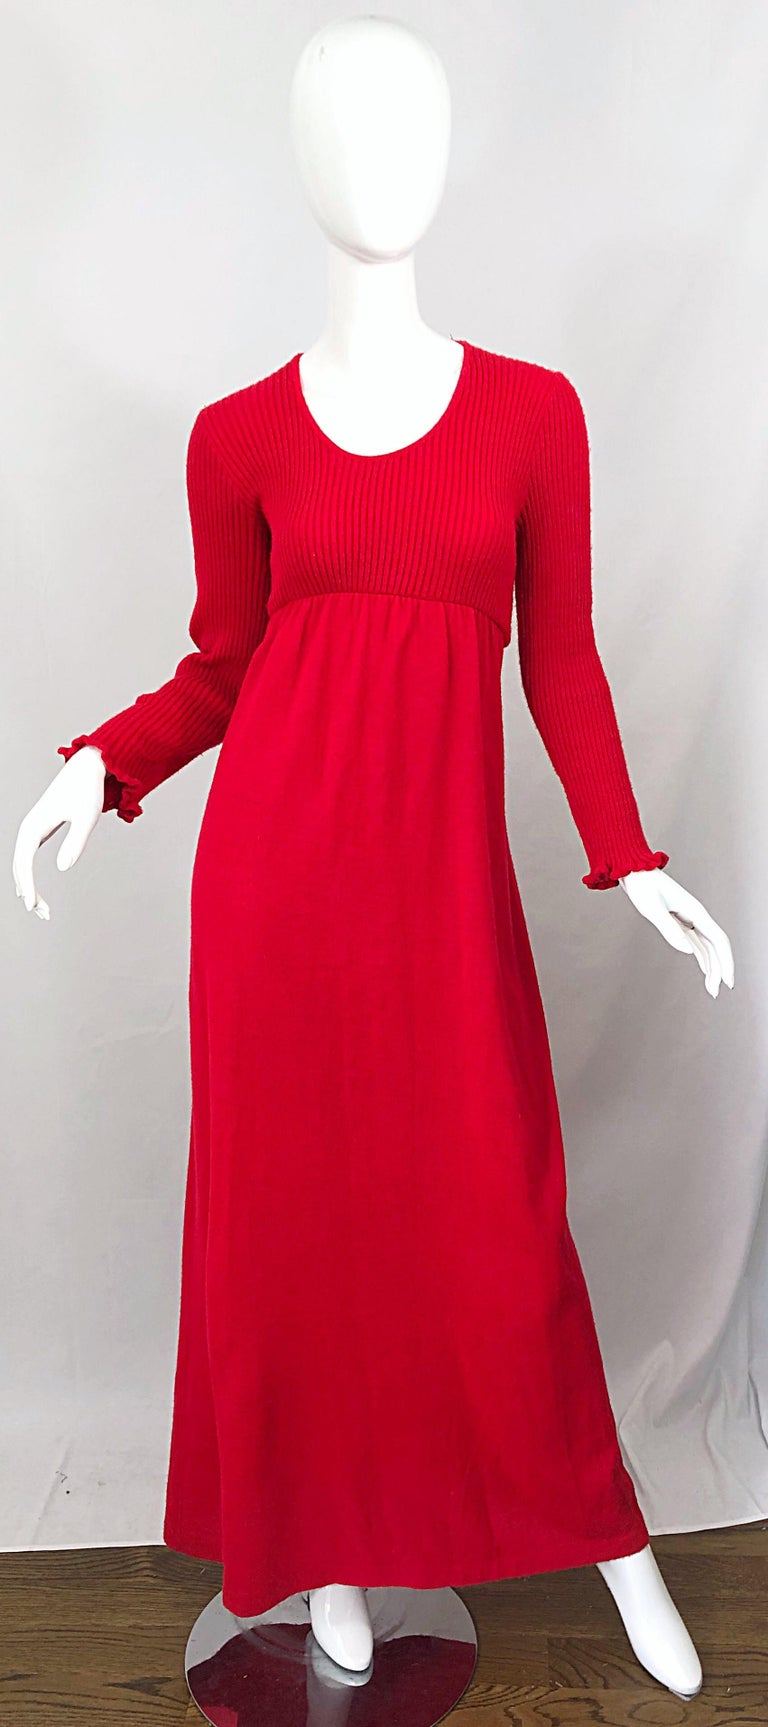 Vintage Joseph Magnin 1970s Lipstick Red Long Sleeve Wool 70s Sweater Maxi Dress For Sale 9